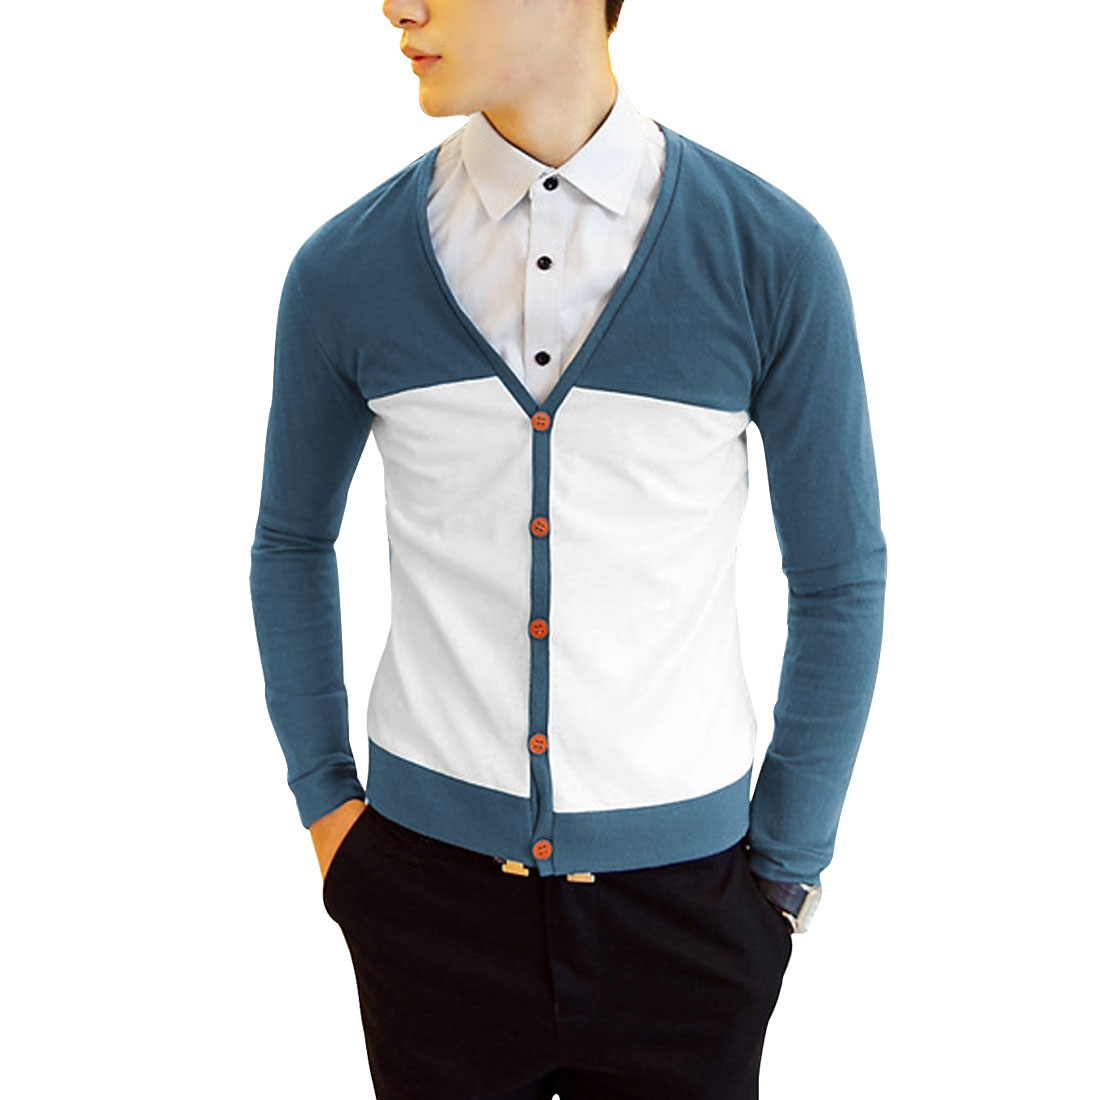 Men Chic V-Neck Navy Blue White Contrast Color Button-Front Cardigan S